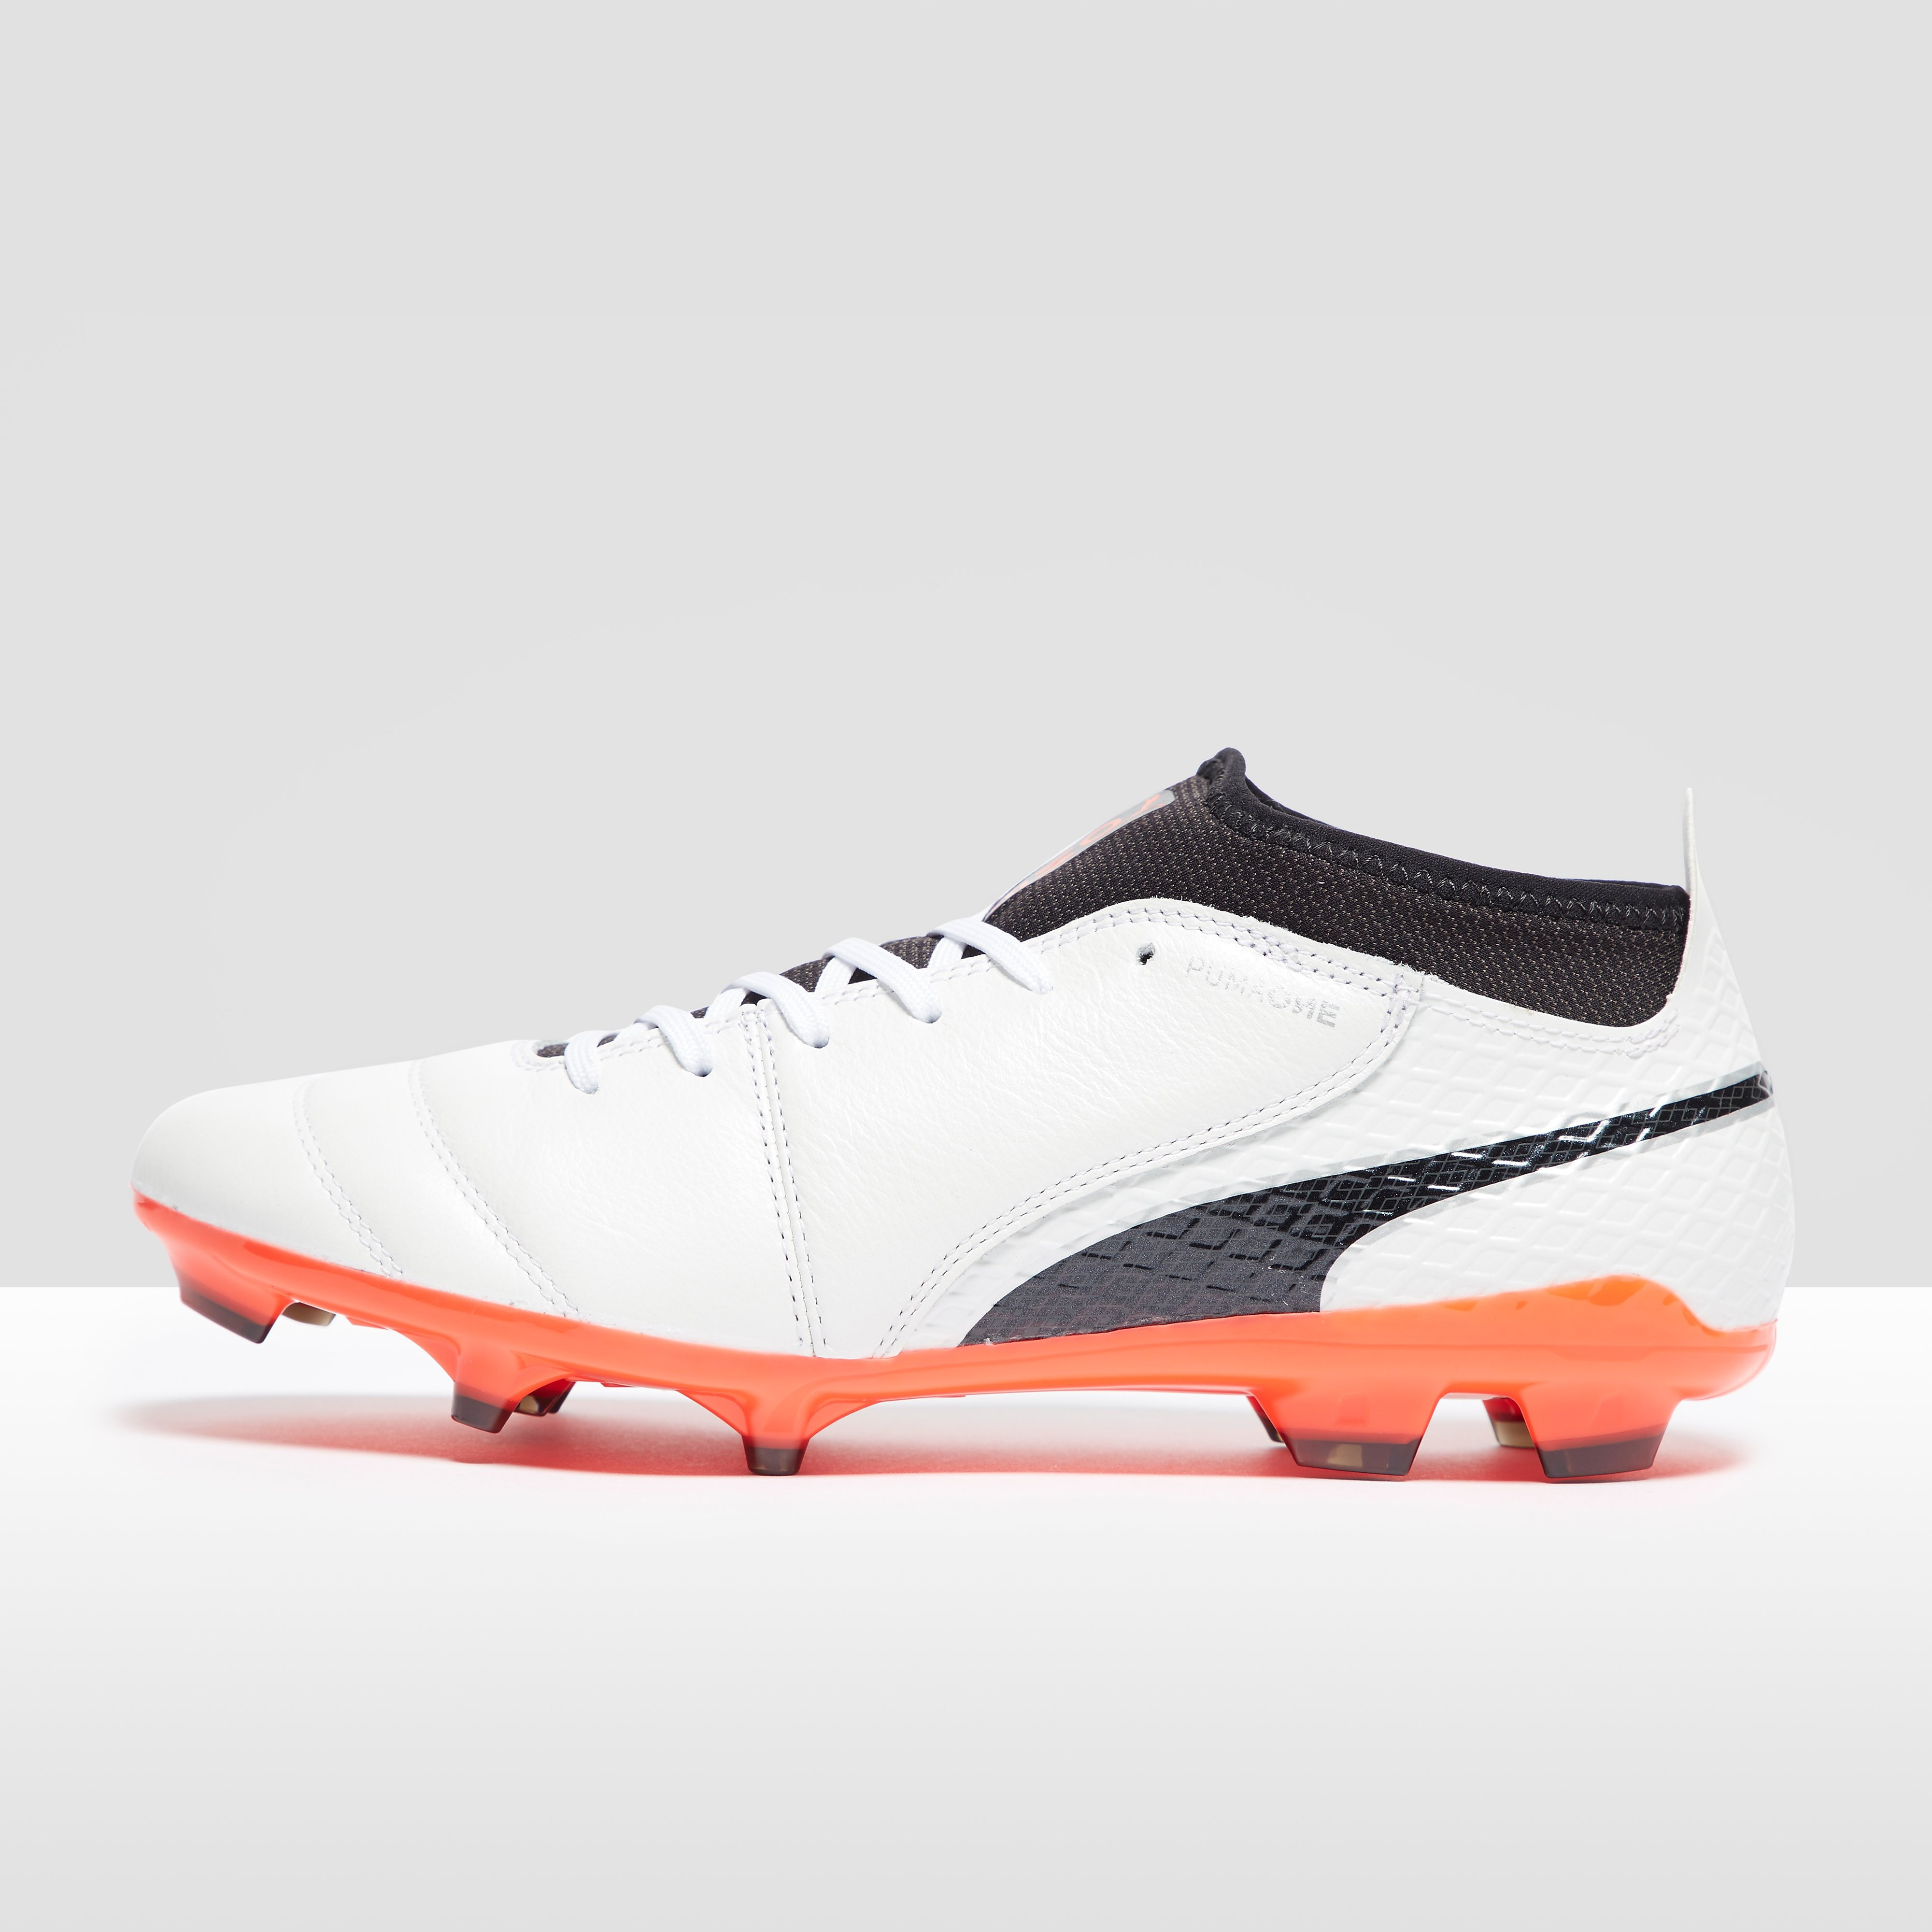 PUMA One 17.2 FG Men's Football Boots